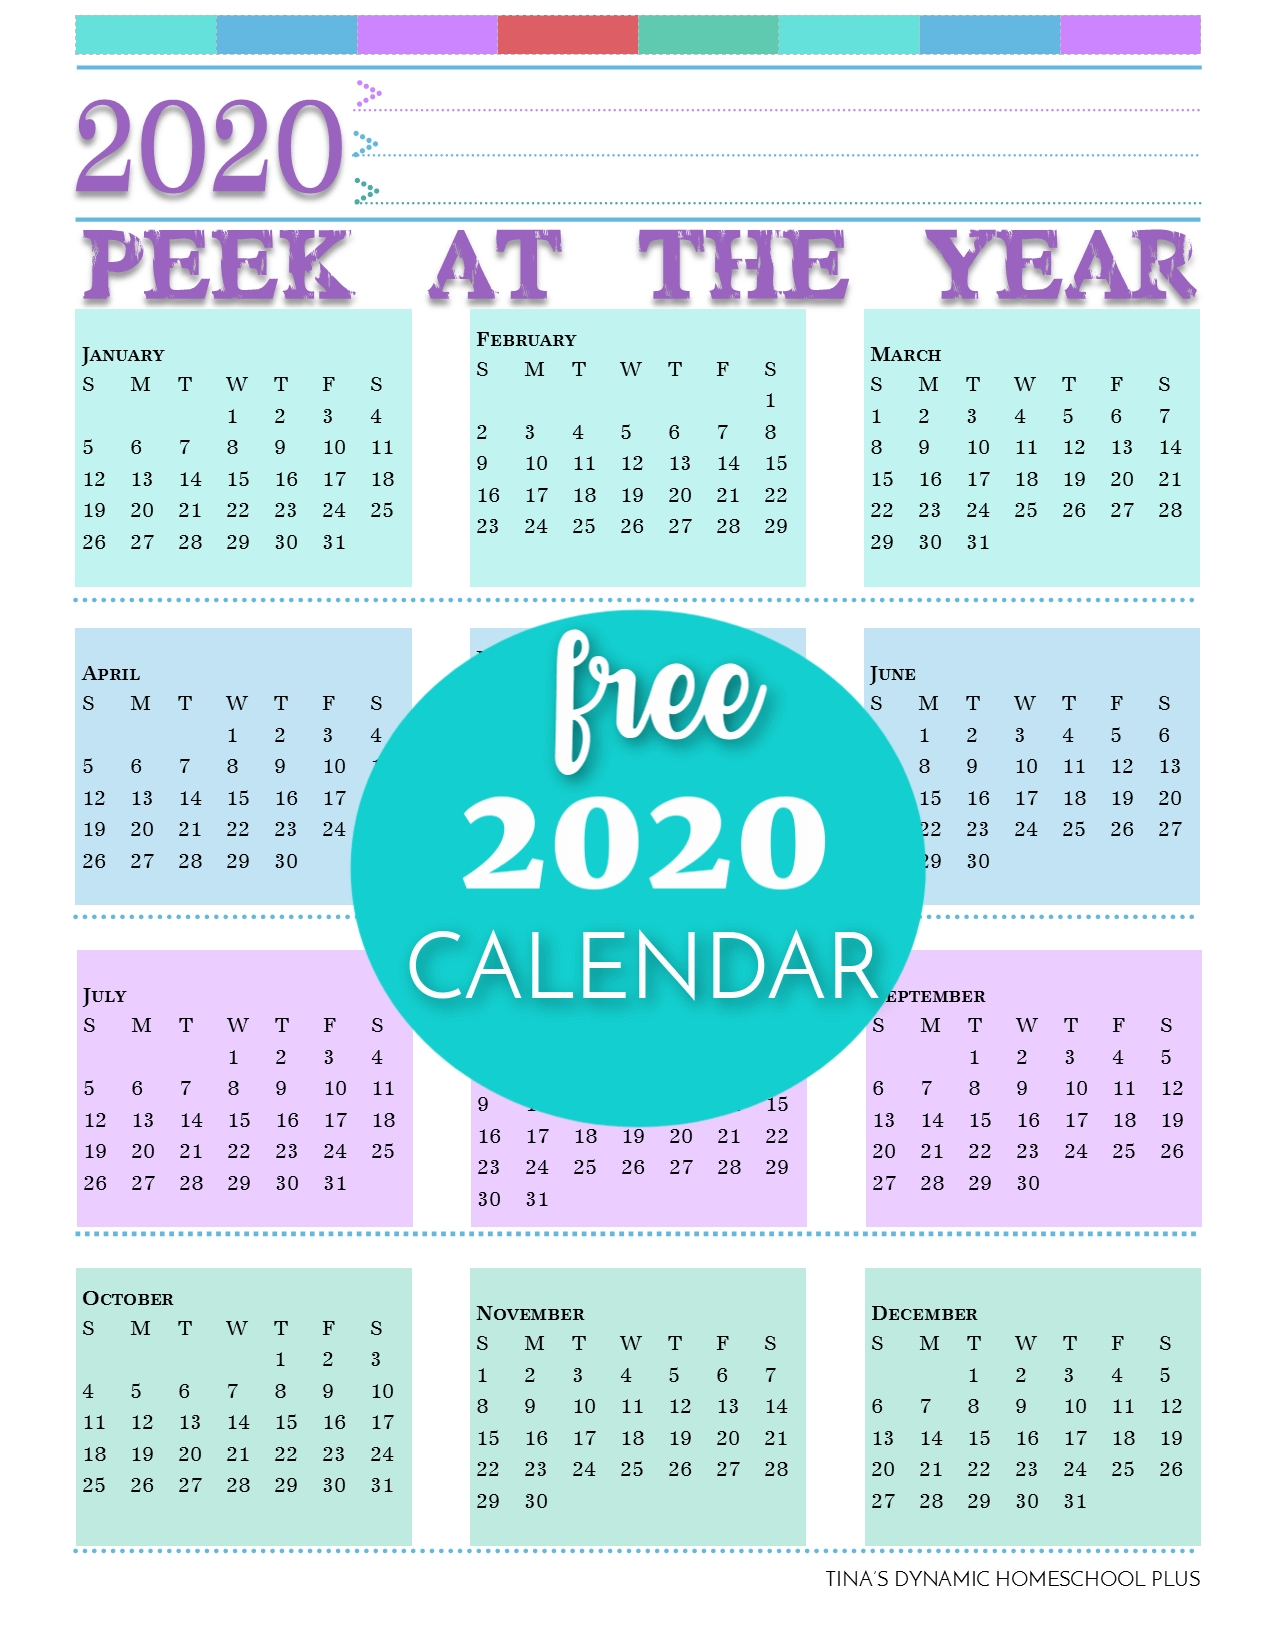 2020 Free Calendar (Add To Your Printable Homeschool Planner